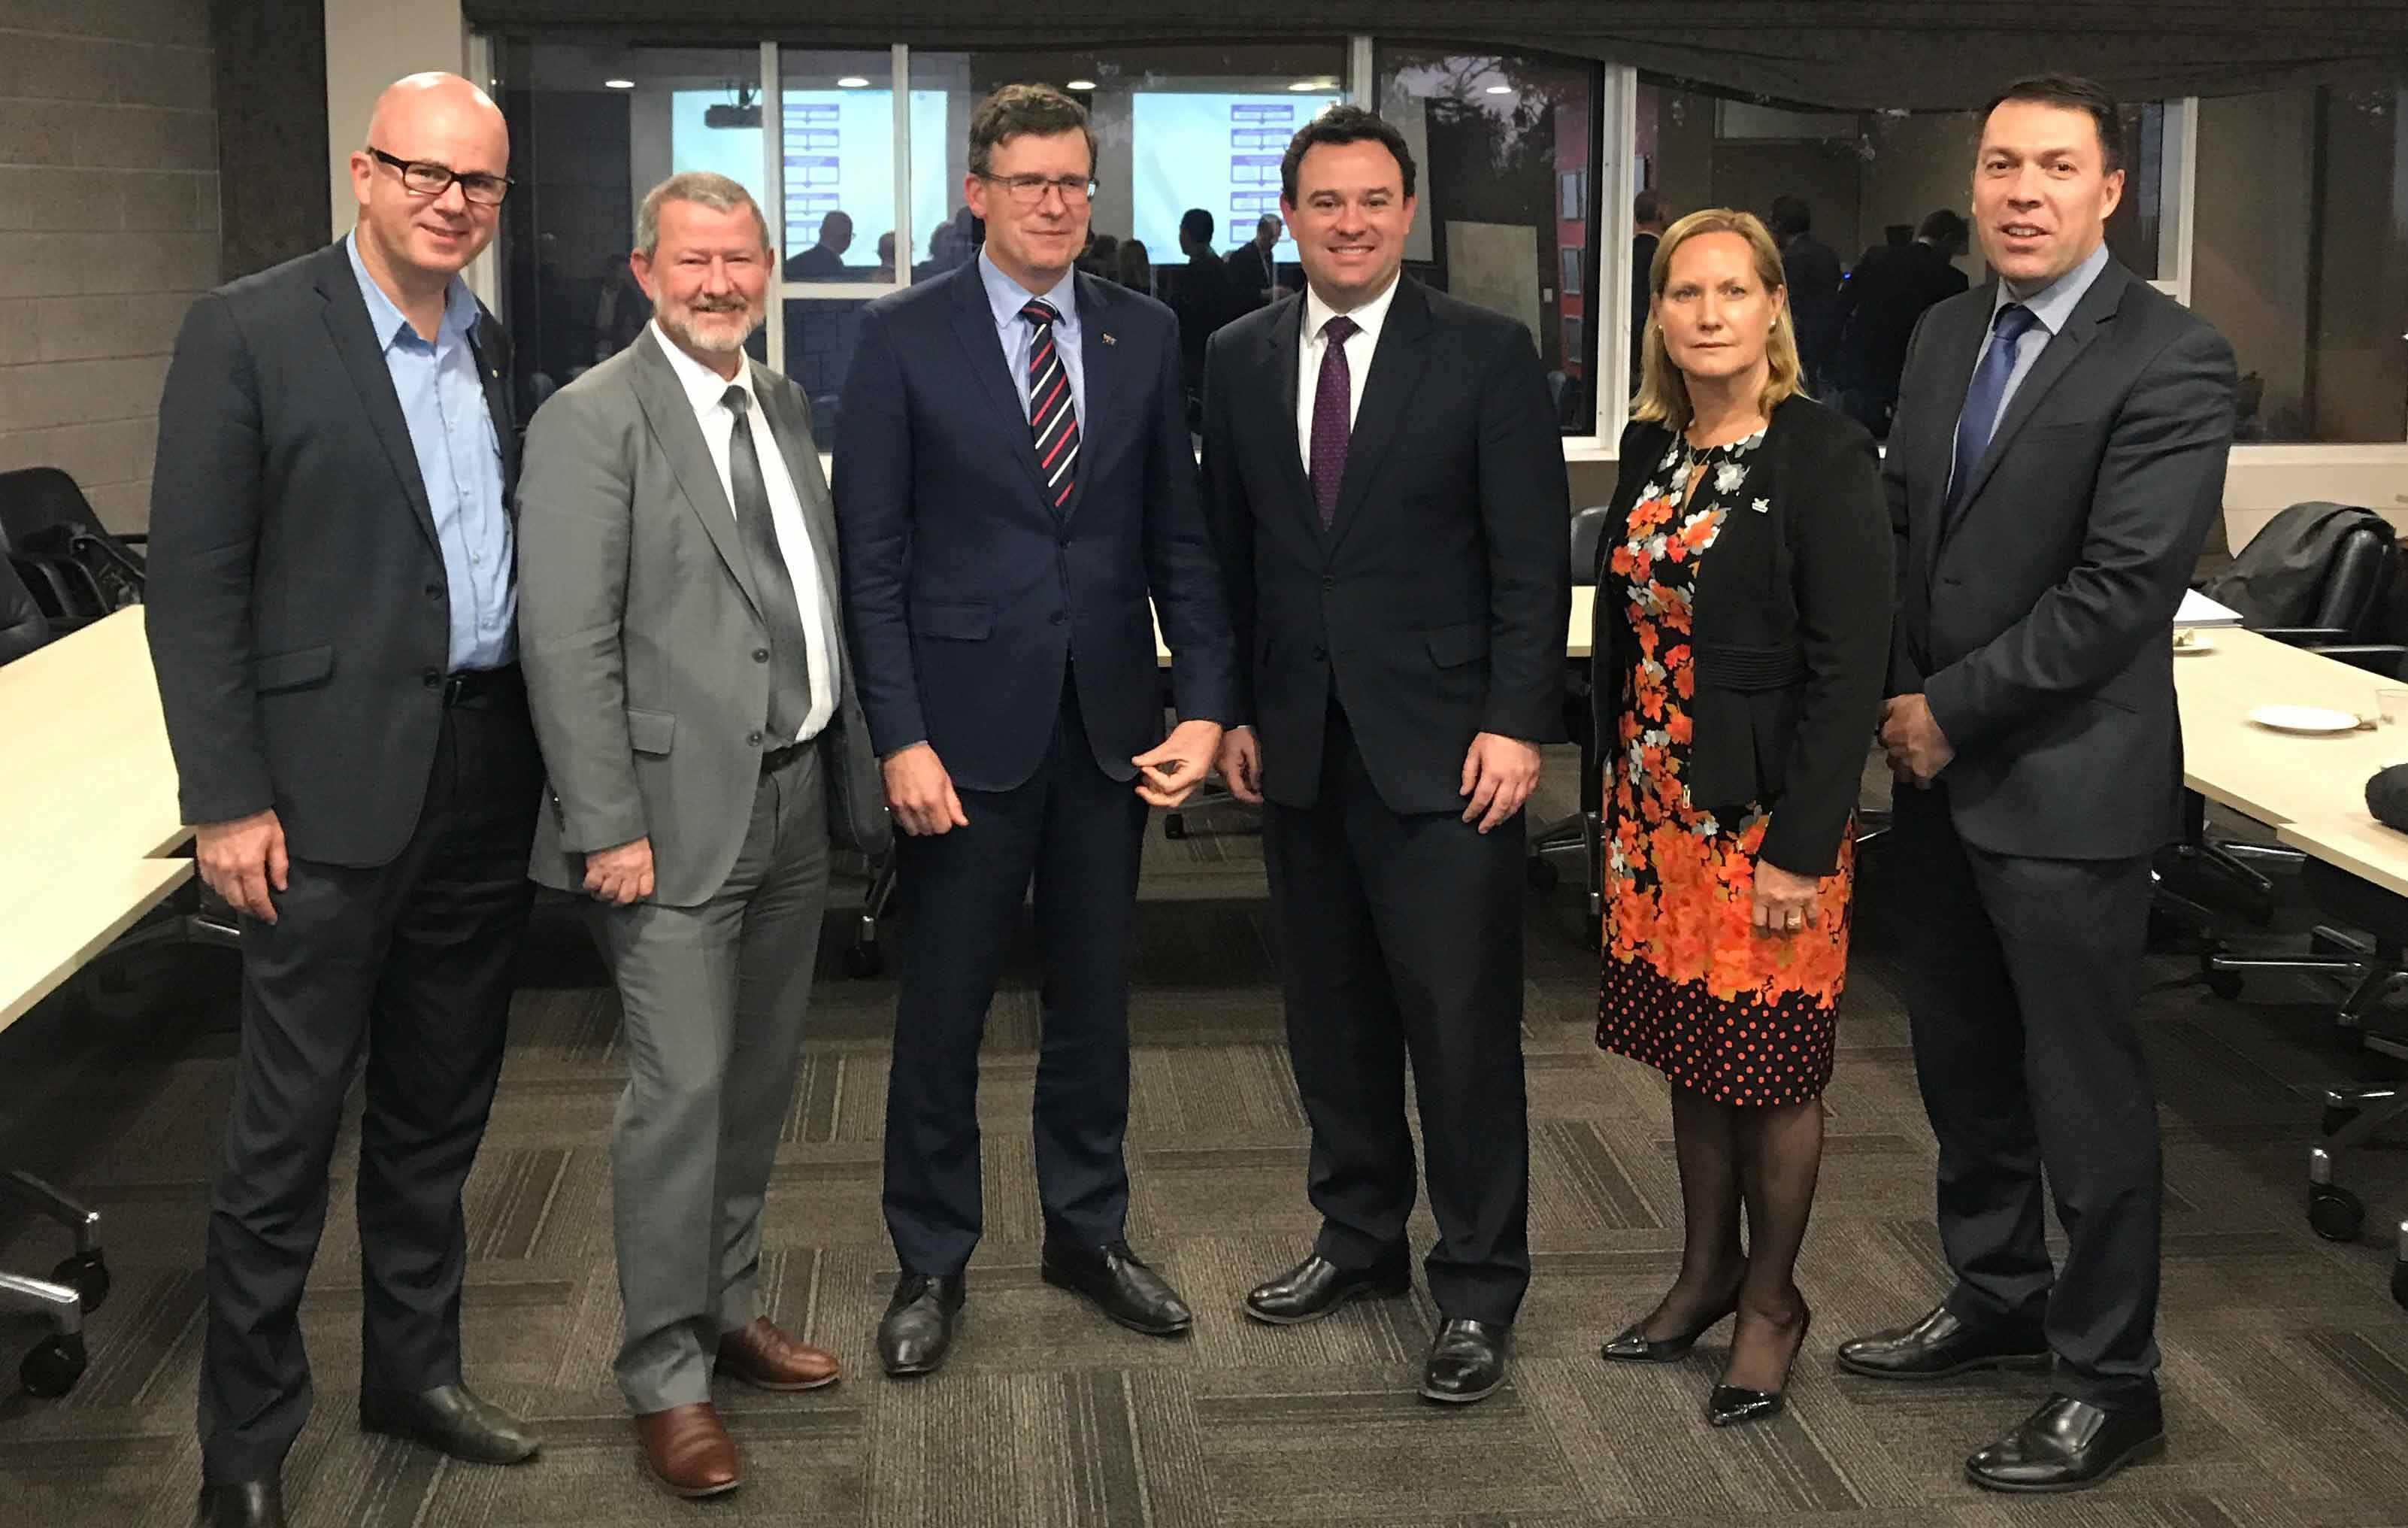 Council has nominated six key projects for up to $15 million of funding under the Western Sydney City Deal Liveability Program. Mayor, Cr Mark Greenhill (left) is part of the Western Sydney City Deal Mayor's Leadership Group, with Penrith Mayor, Minister Tudge, Minister Ayers, Wollondilly Mayor and Campbelltown Mayor